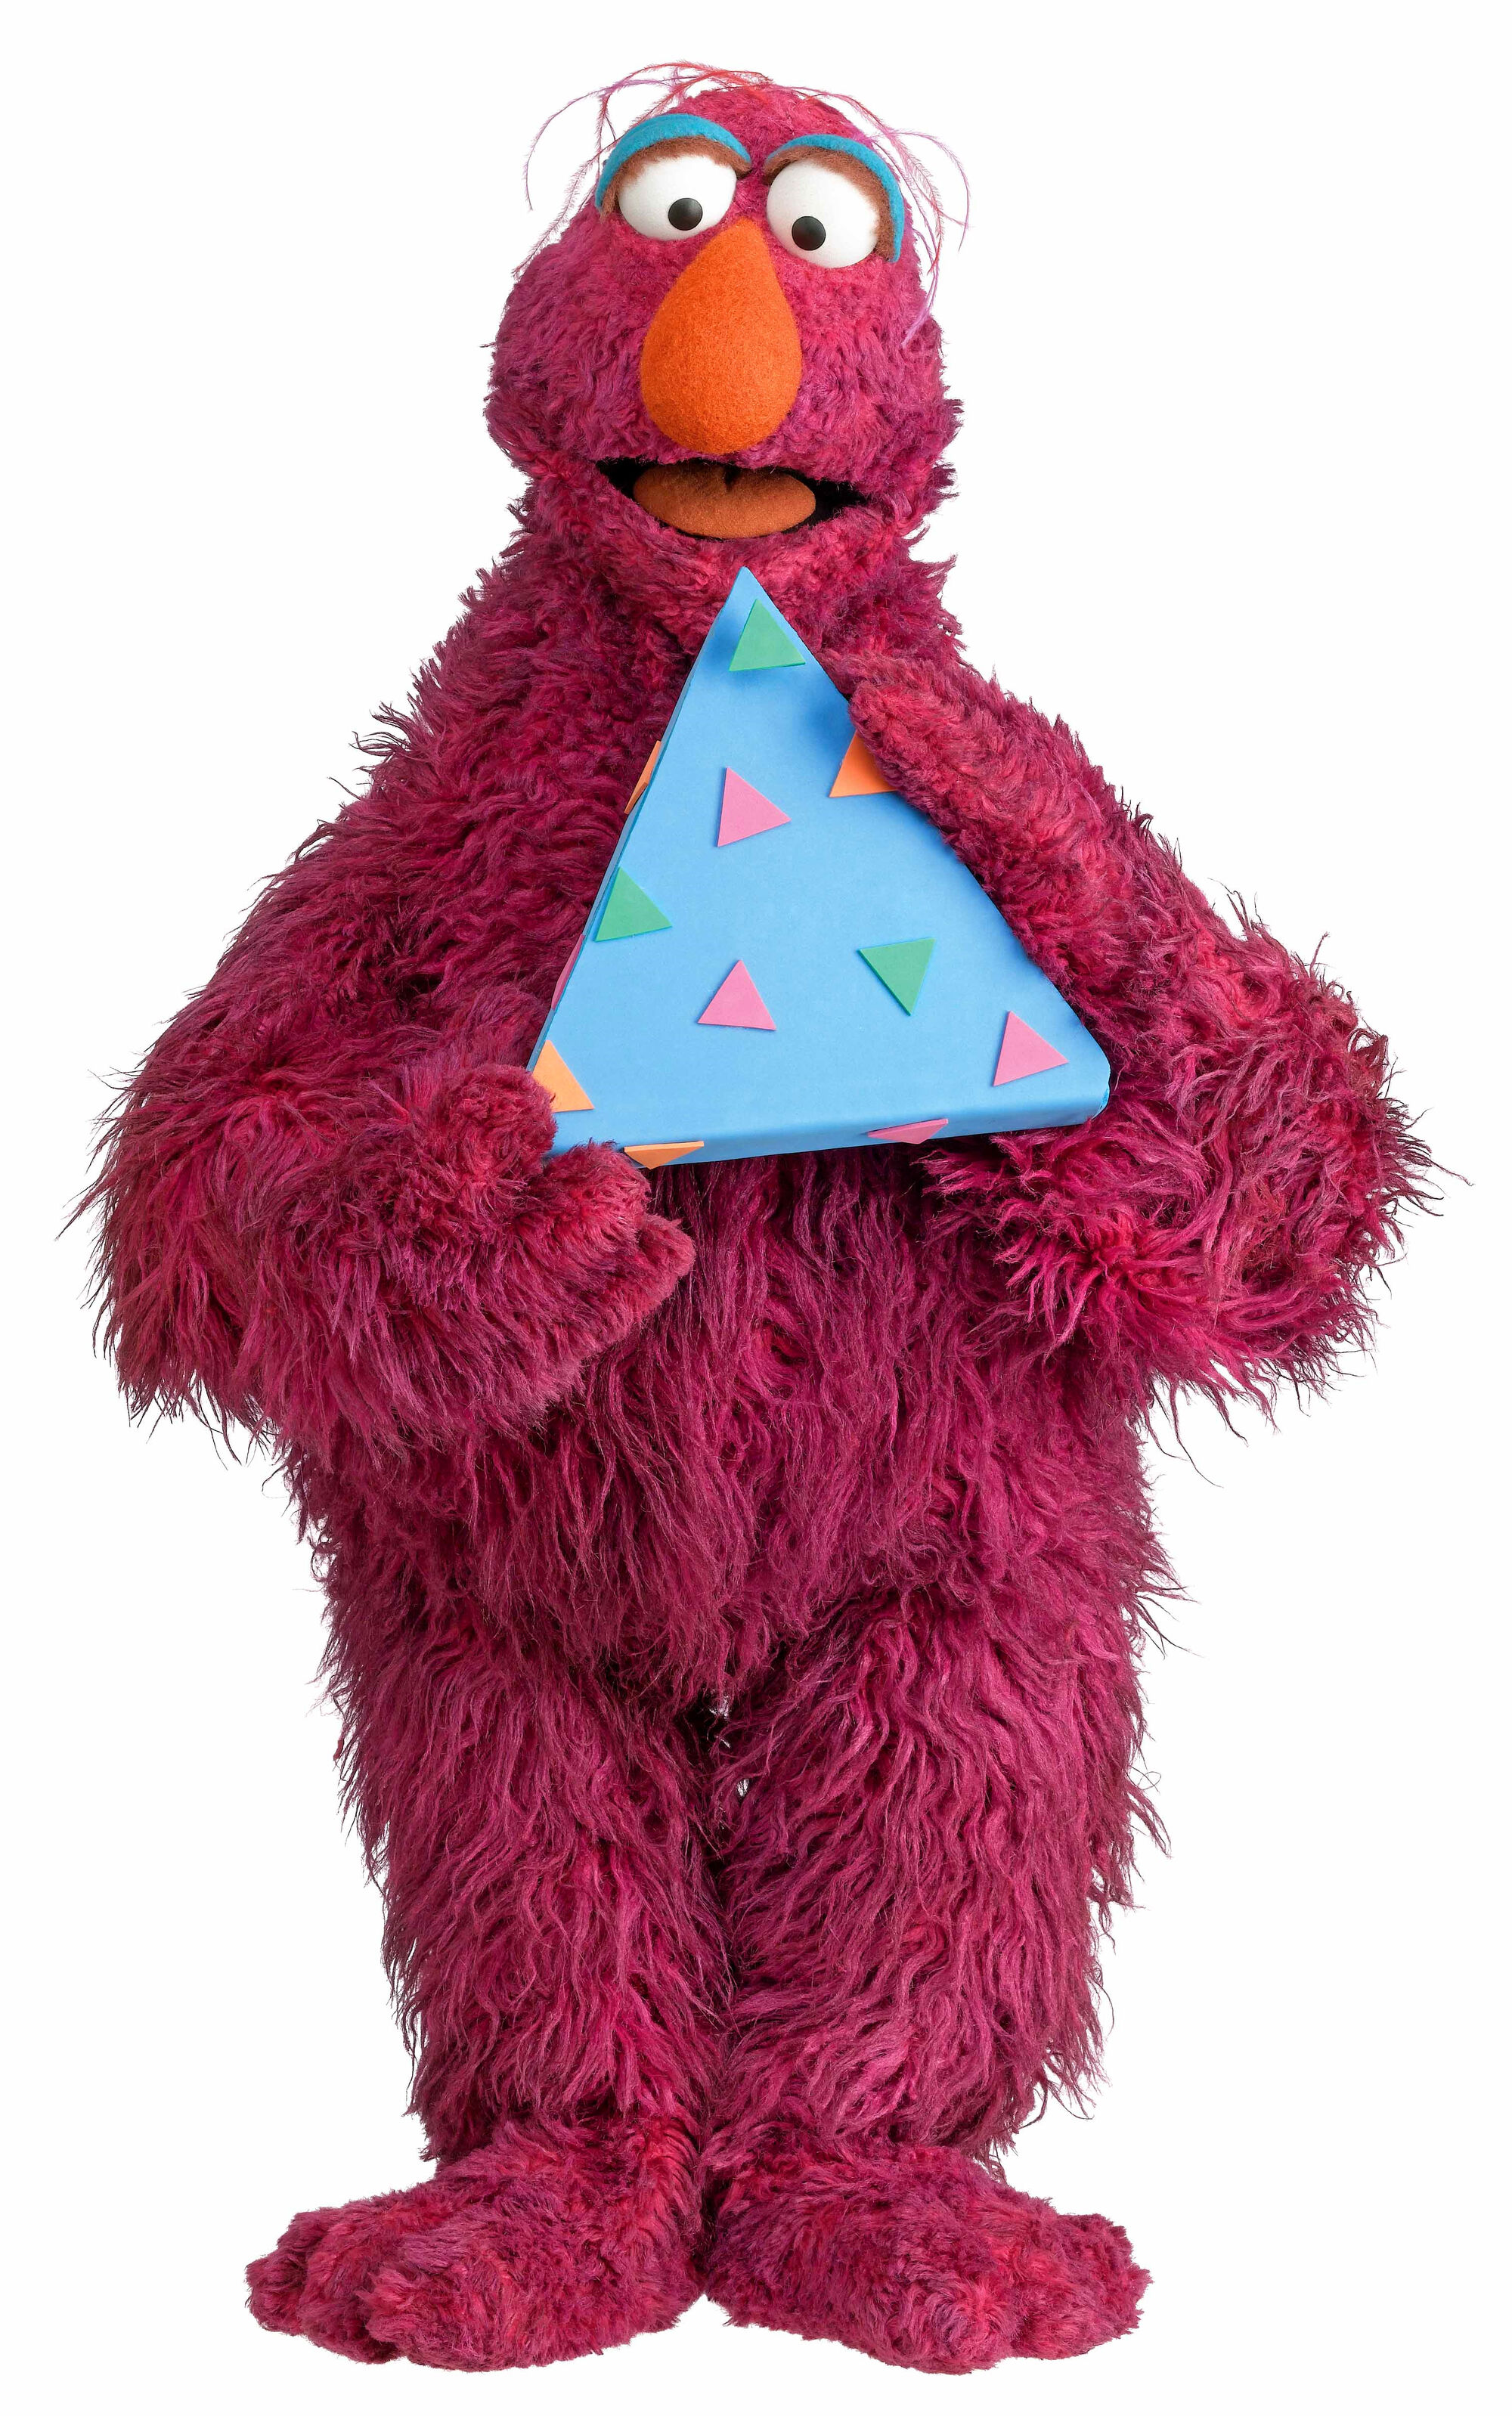 Telly monster muppet wiki fandom powered by wikia